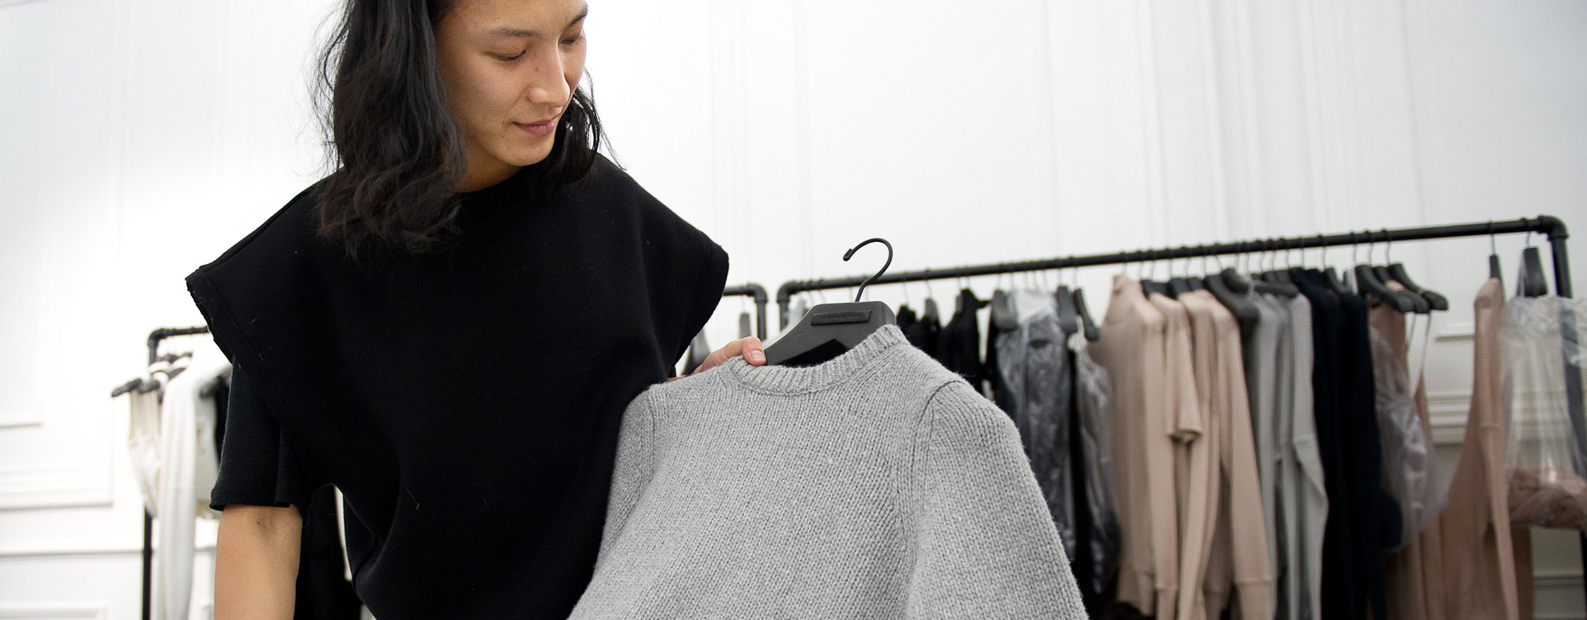 Alexander-Wang-is-Confirmed-to-Collaborate-with-HM-1